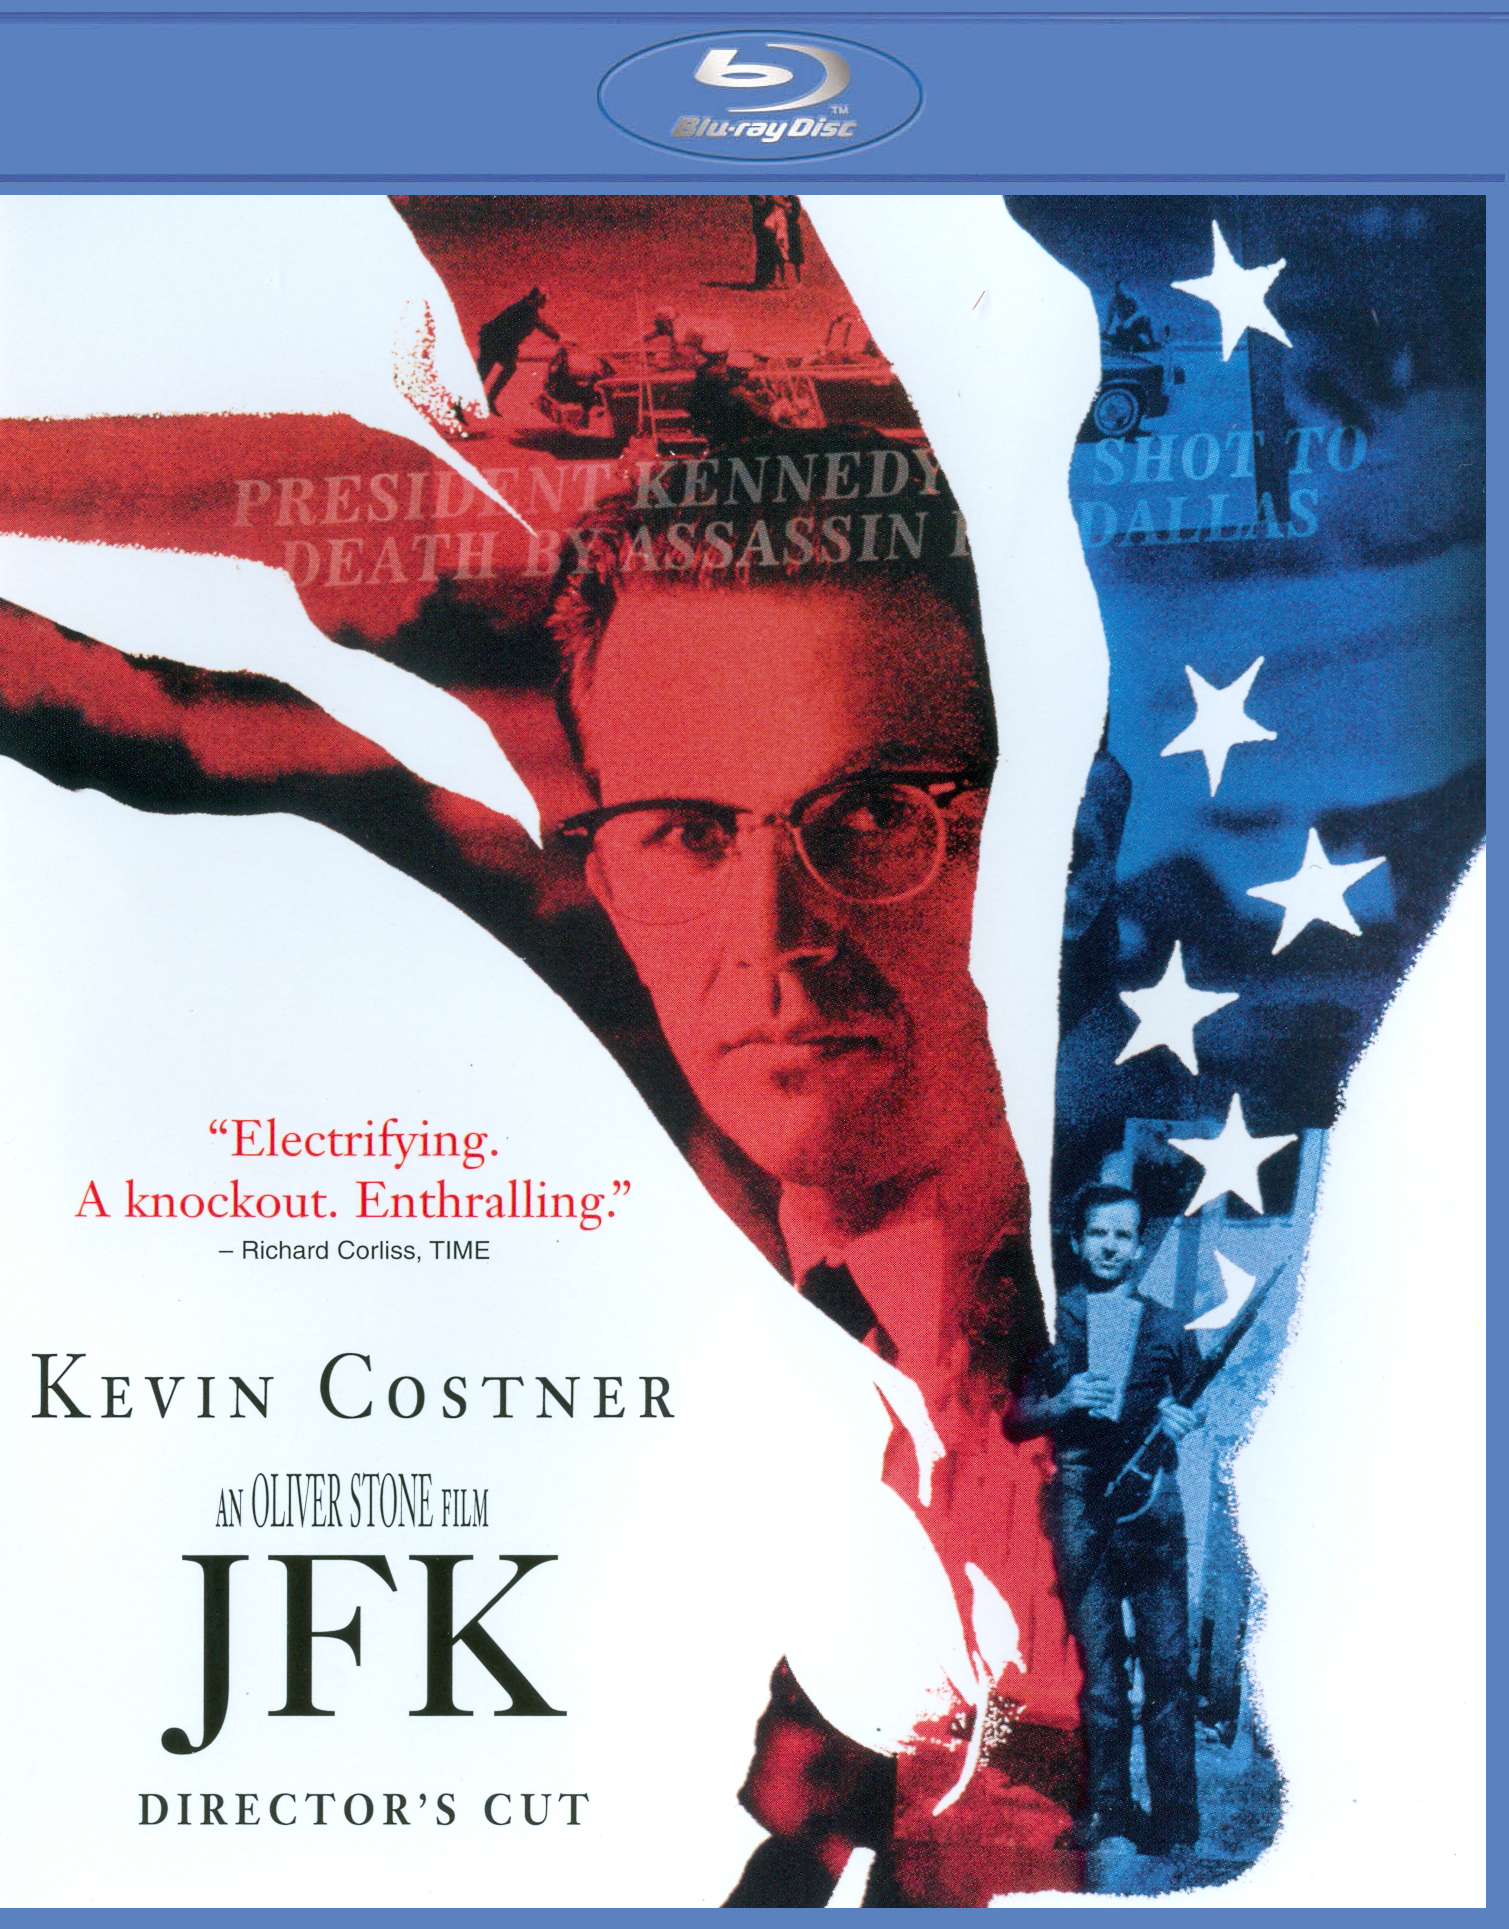 e909a725320 Director Oliver Stone s once-controversial view of the fundamental  dishonesty of the American government now seems